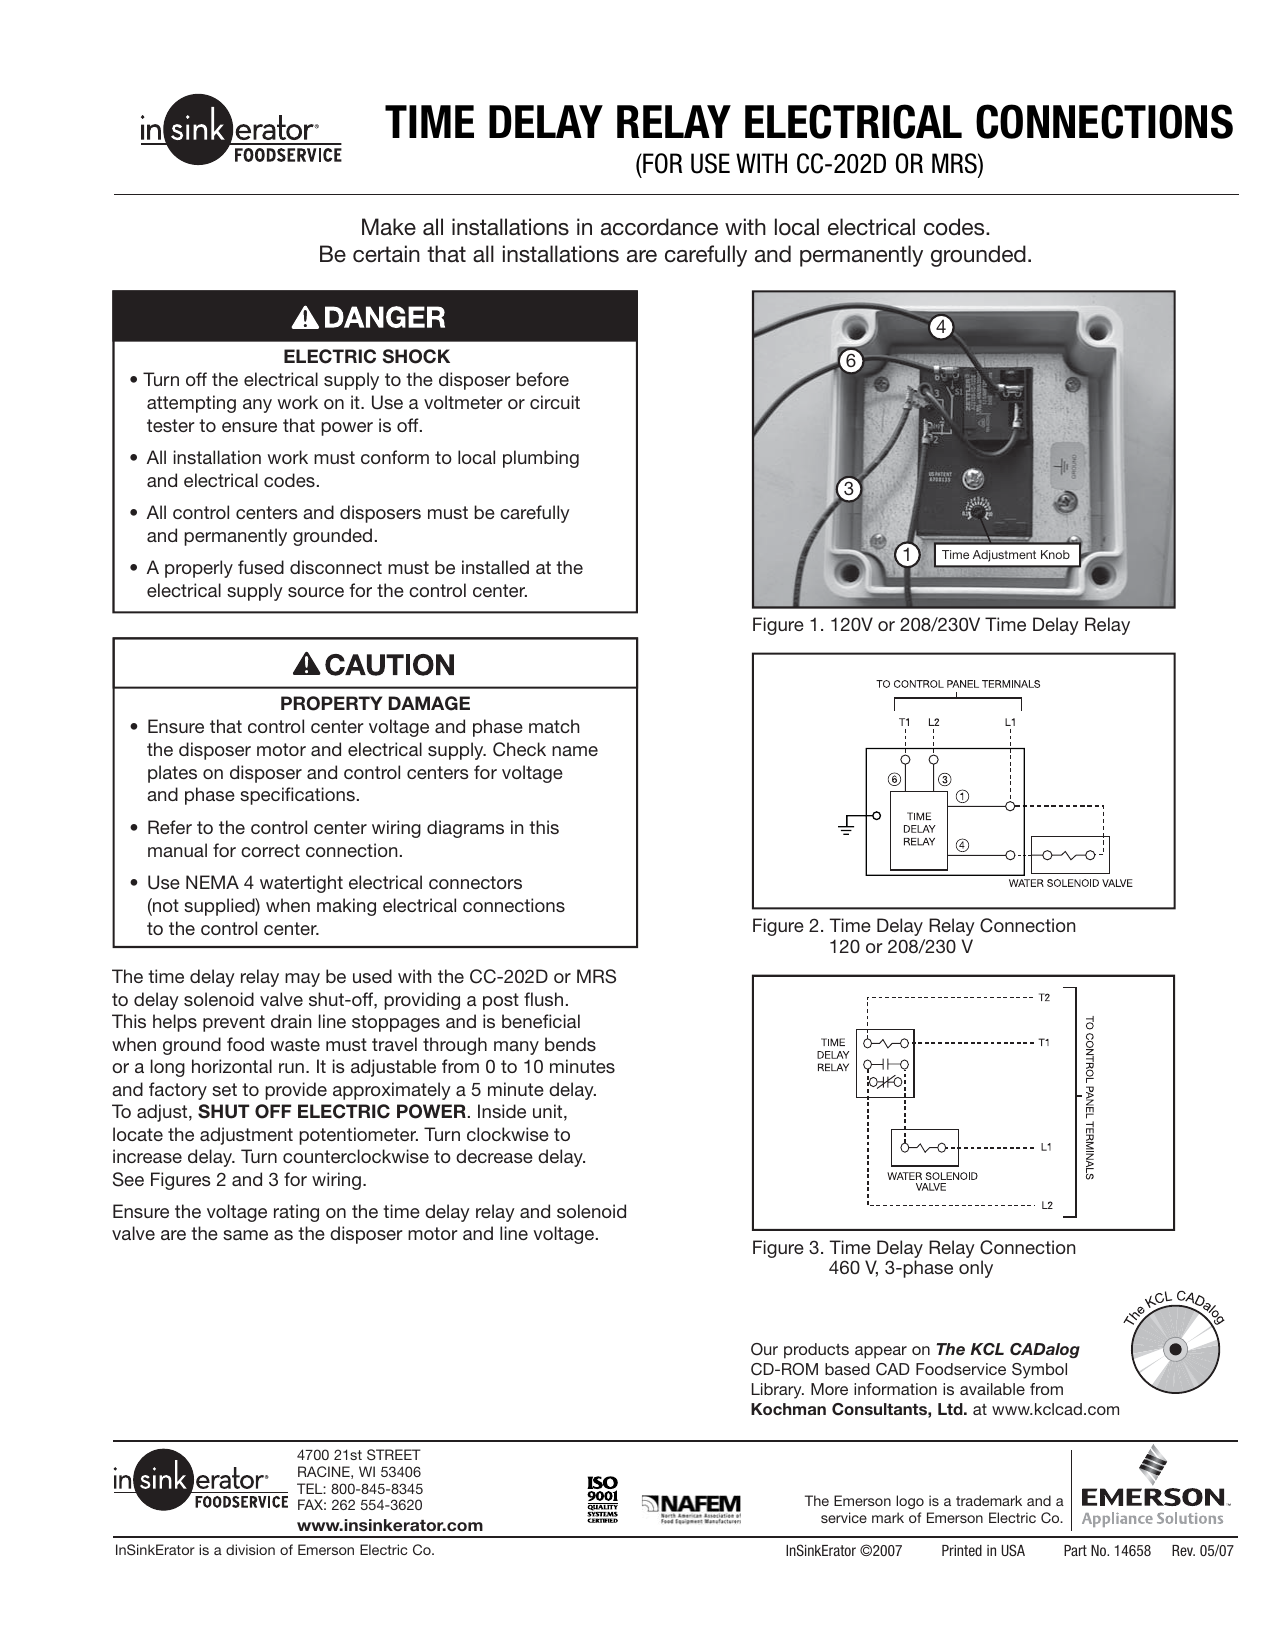 Time Delay Relay Electrical Connections 120 Volt Control Wiring Diagram